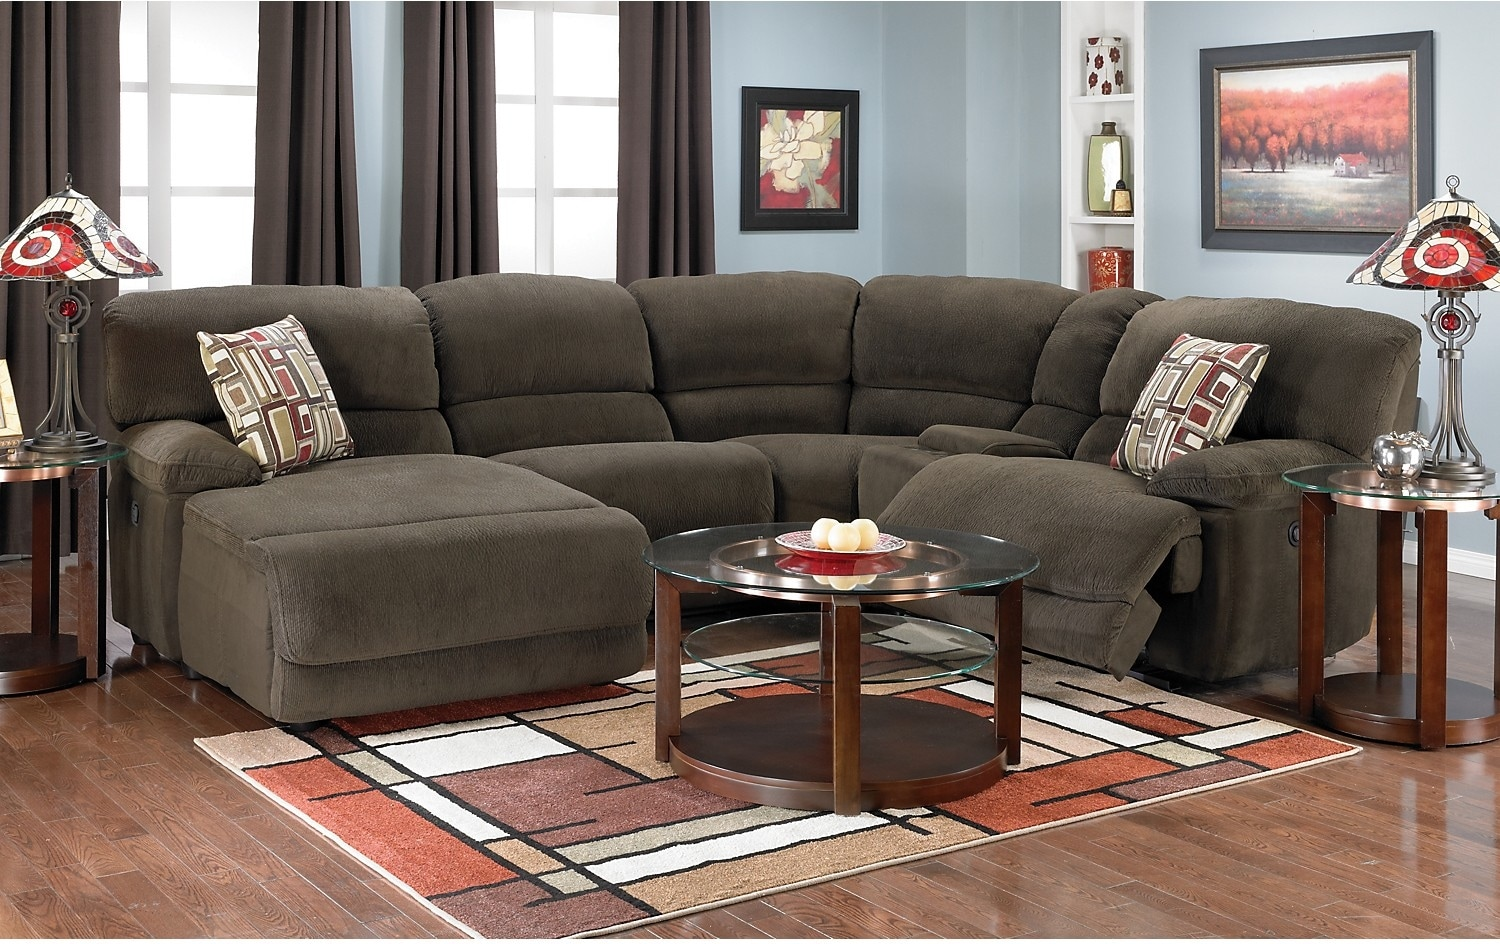 montreal sectional sofa in slate latest fabrics india the brick living room sets